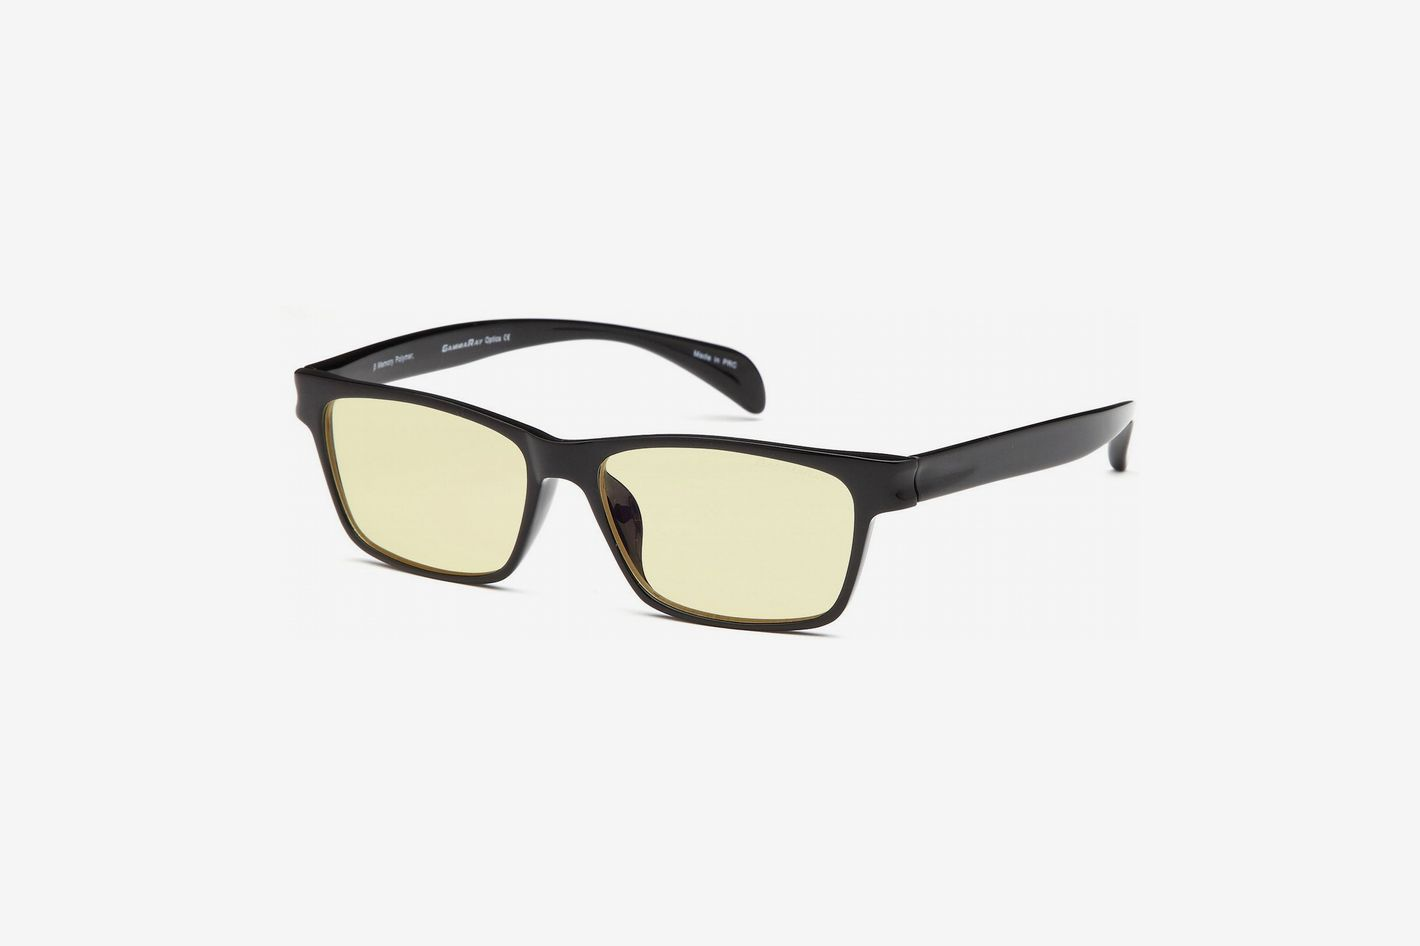 a764d4359f GAMMA RAY 003 Anti UV Glare Harmful Blue Light Computer Glasses